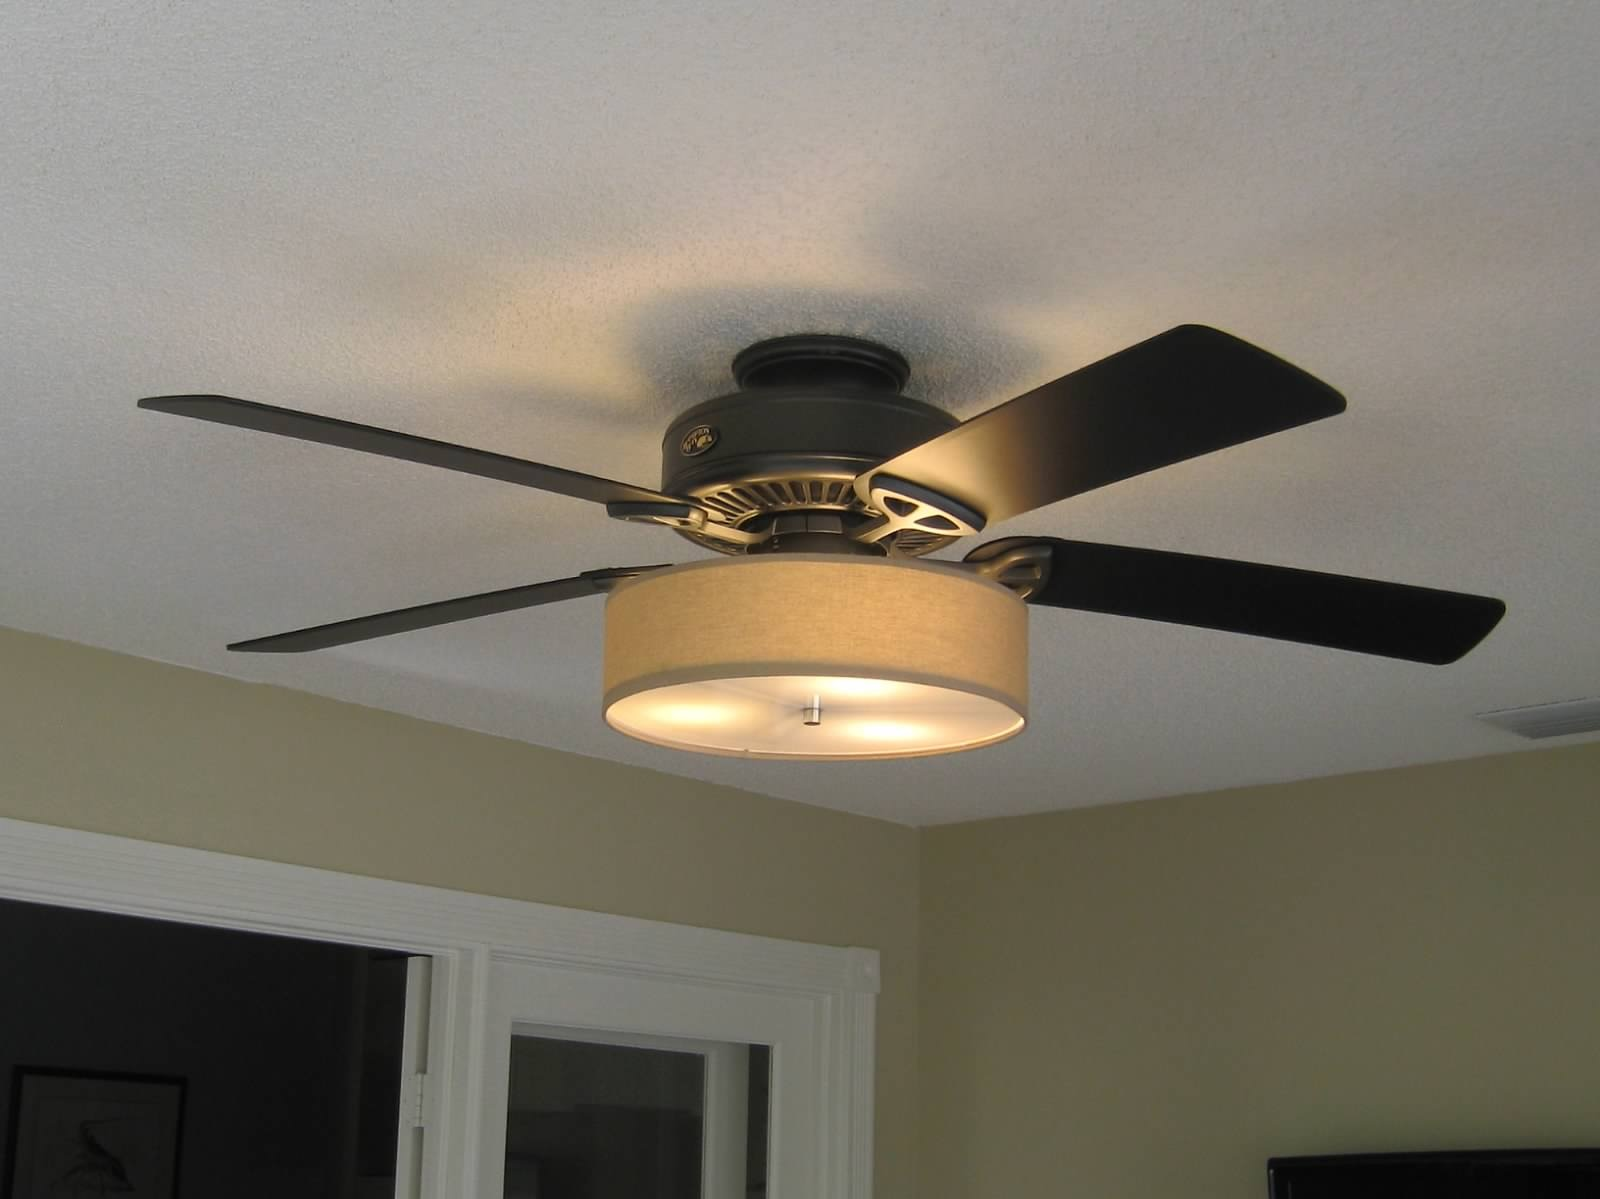 Why Hampton Bay Ceiling Fan Light Bulb Makes Your Home